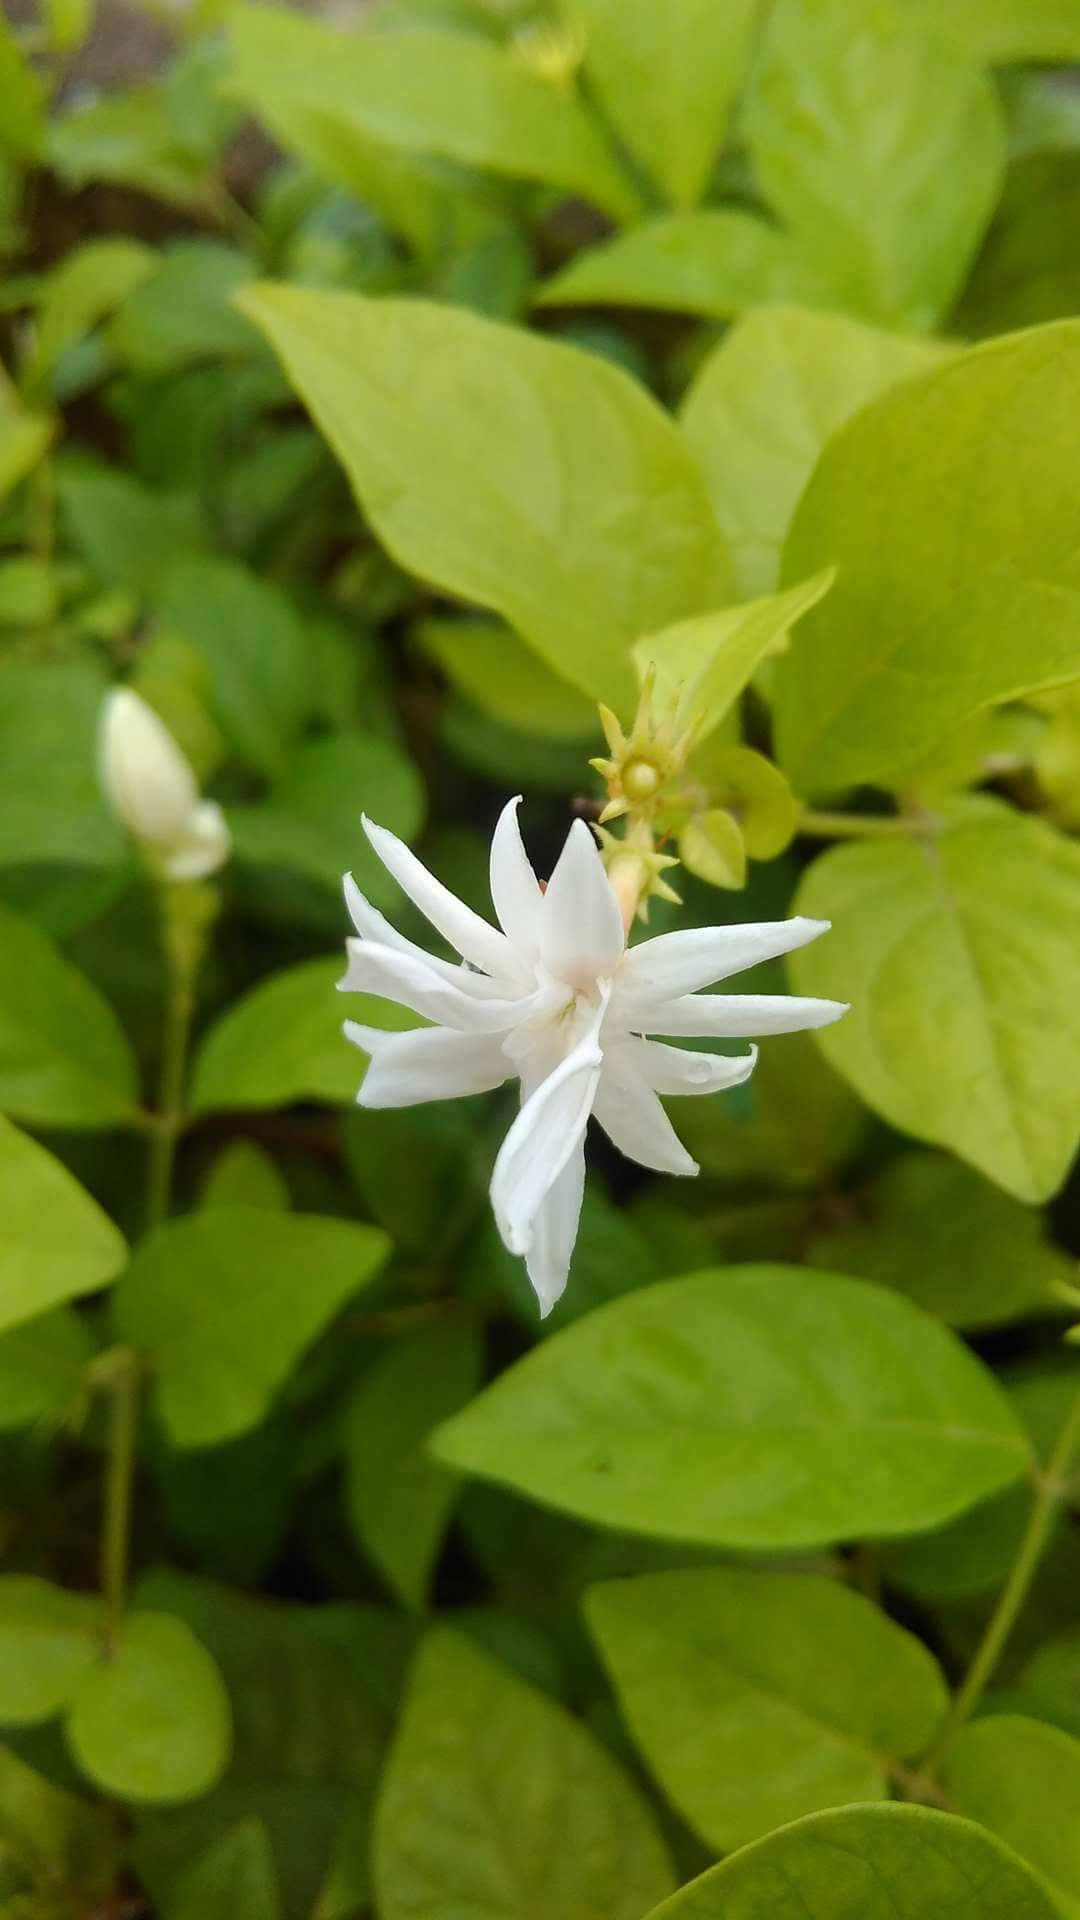 Filecommon indian jasmineg wikimedia commons filecommon indian jasmineg izmirmasajfo